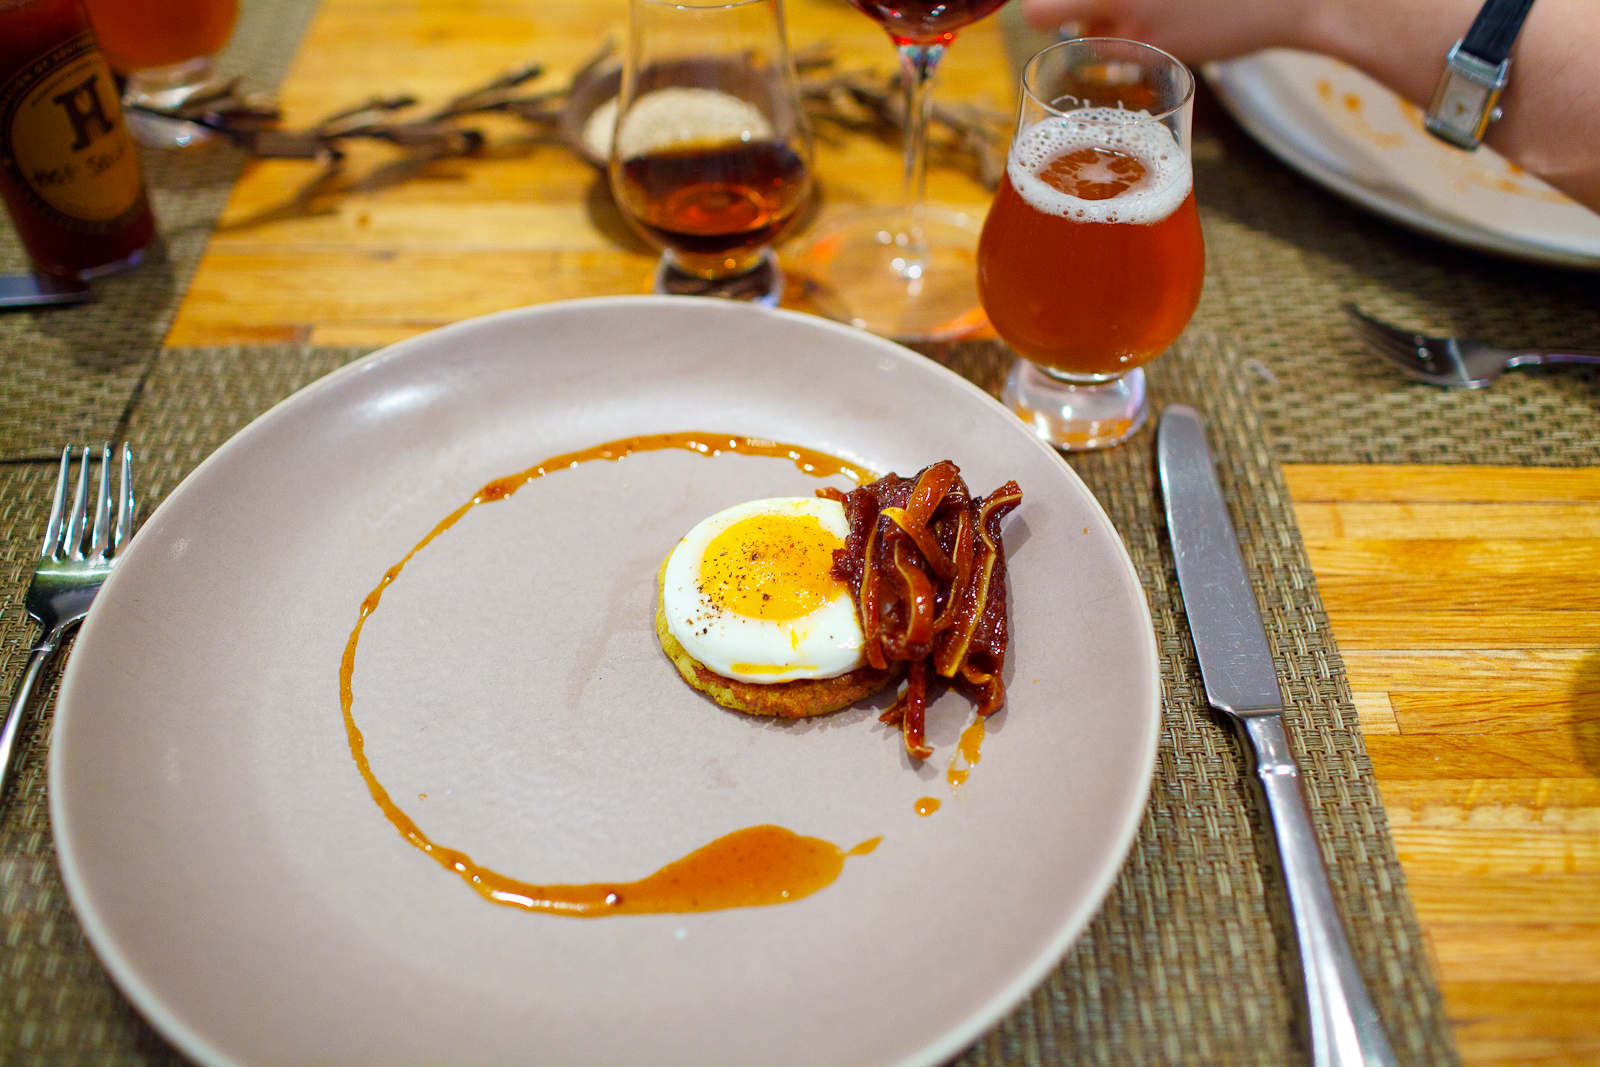 8th Course: Sunny-side up egg on a johnny cake with pig ears.